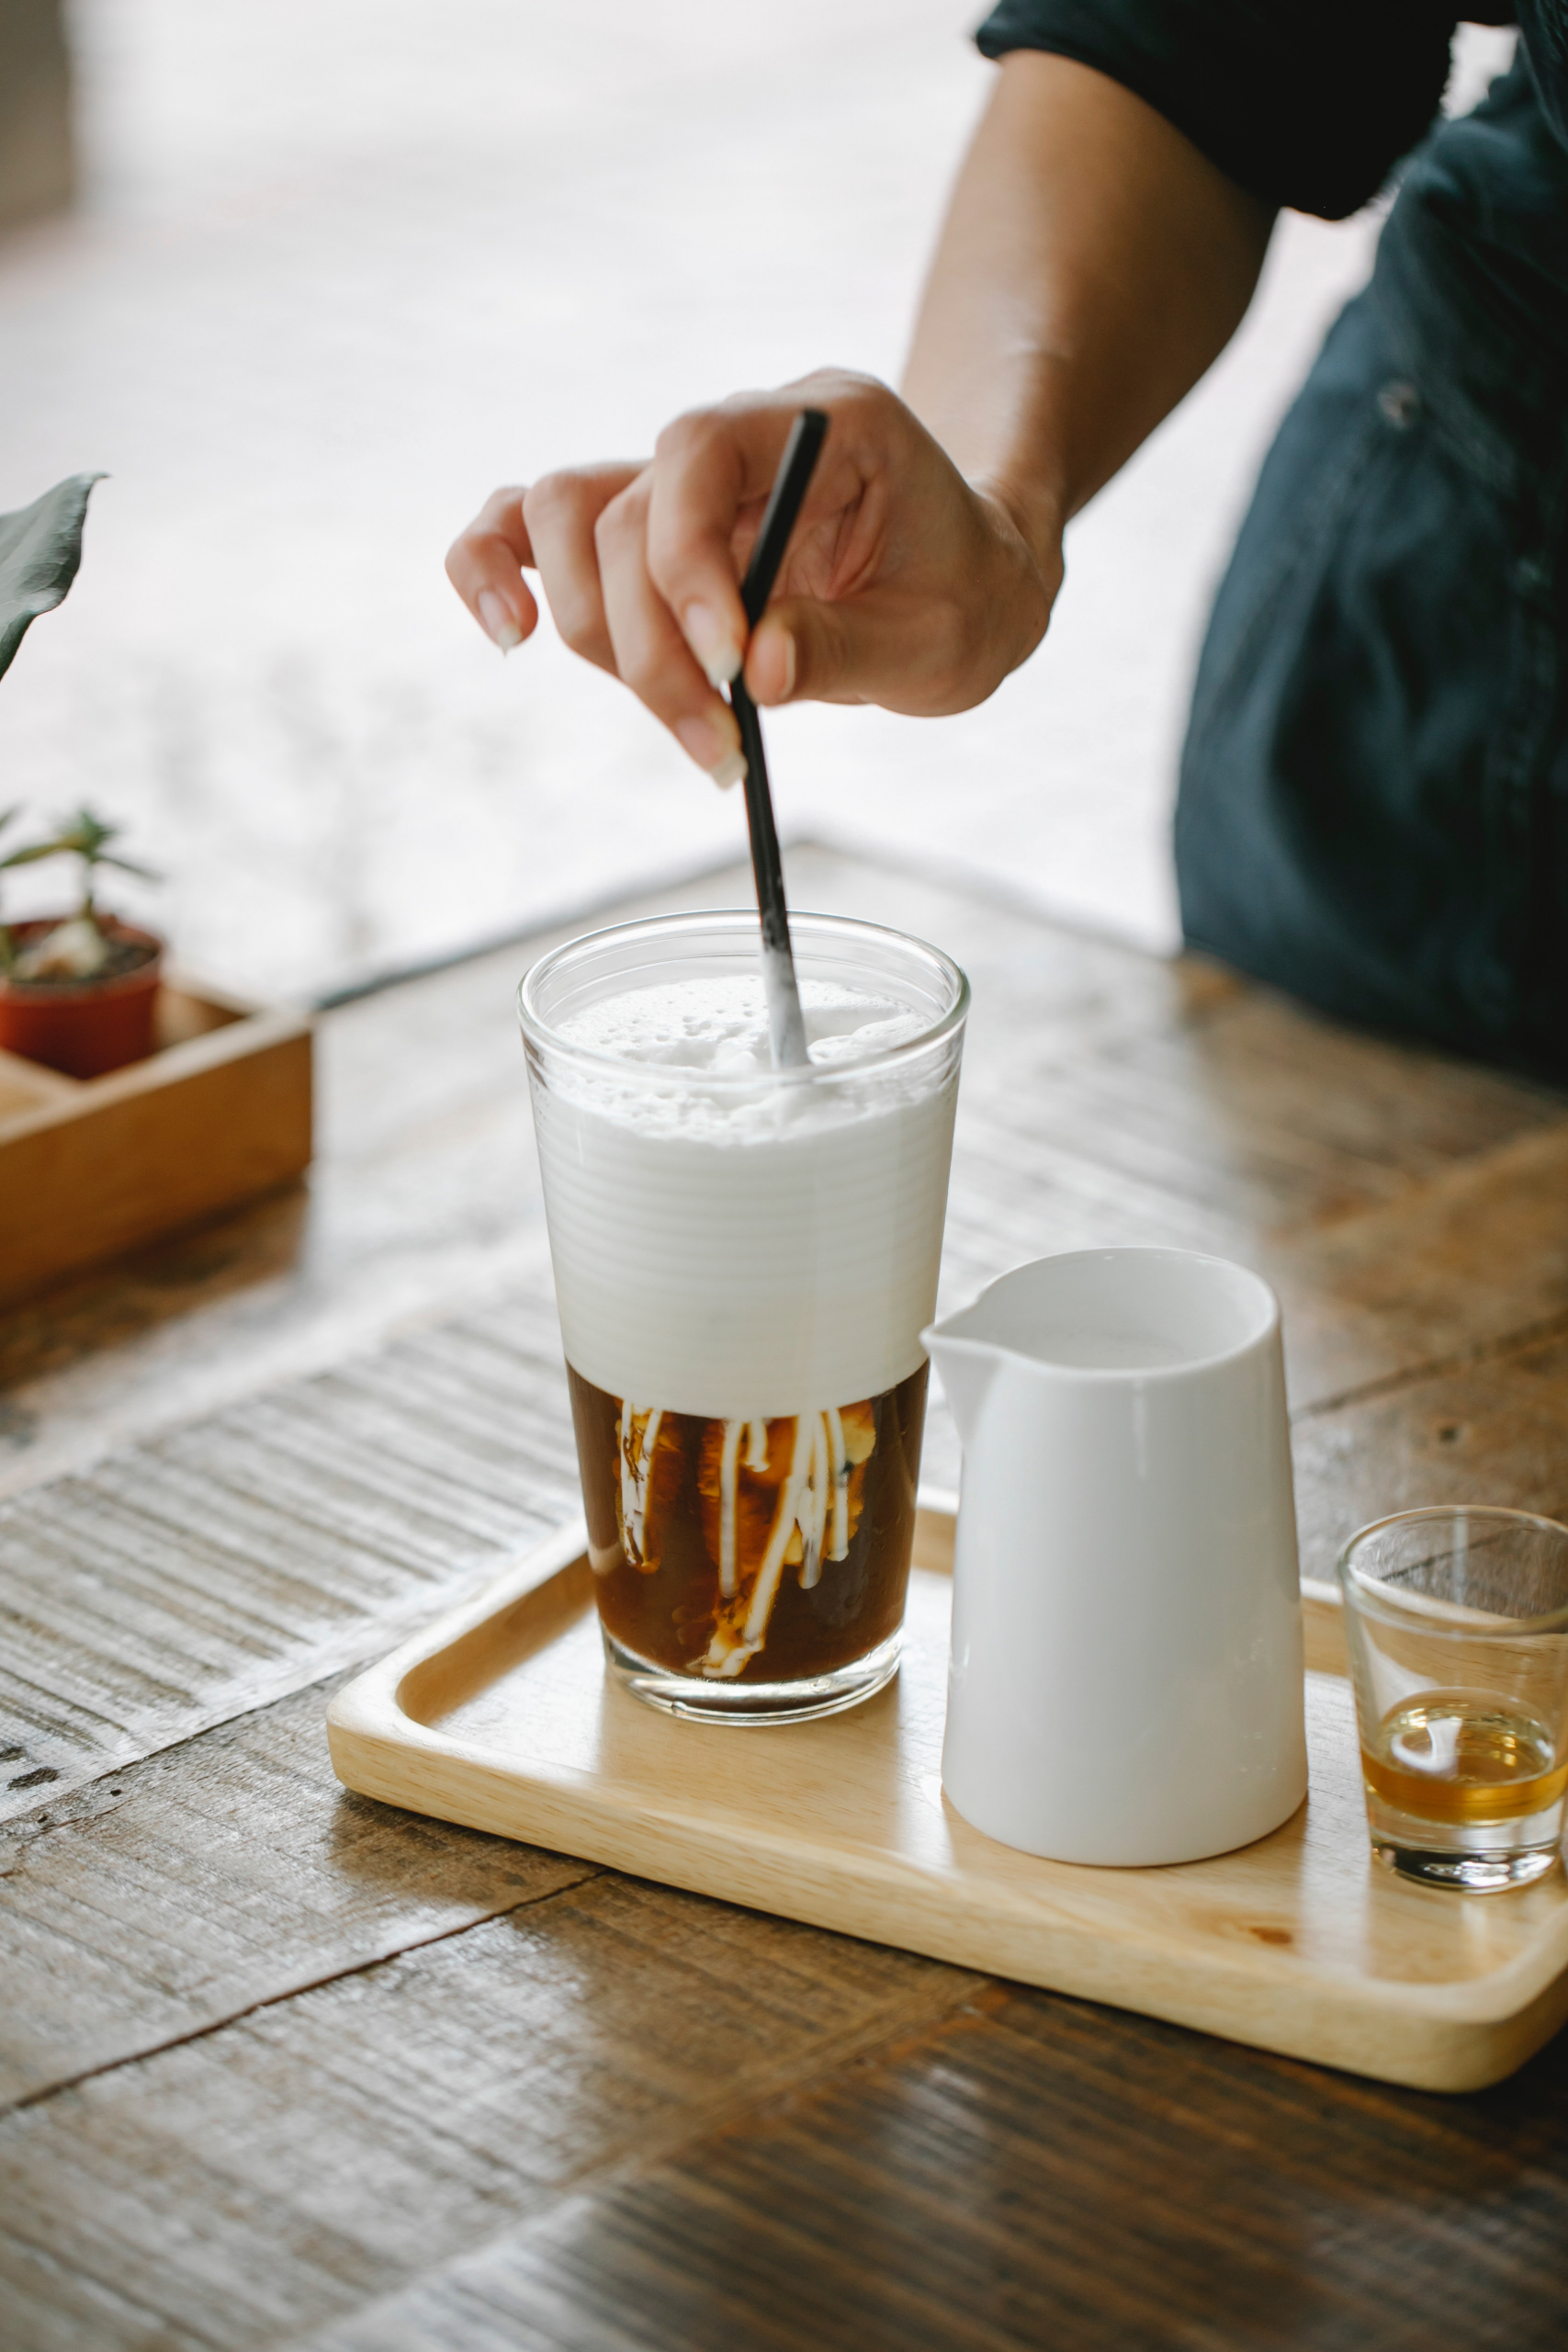 How to make Starbucks cold foam at home